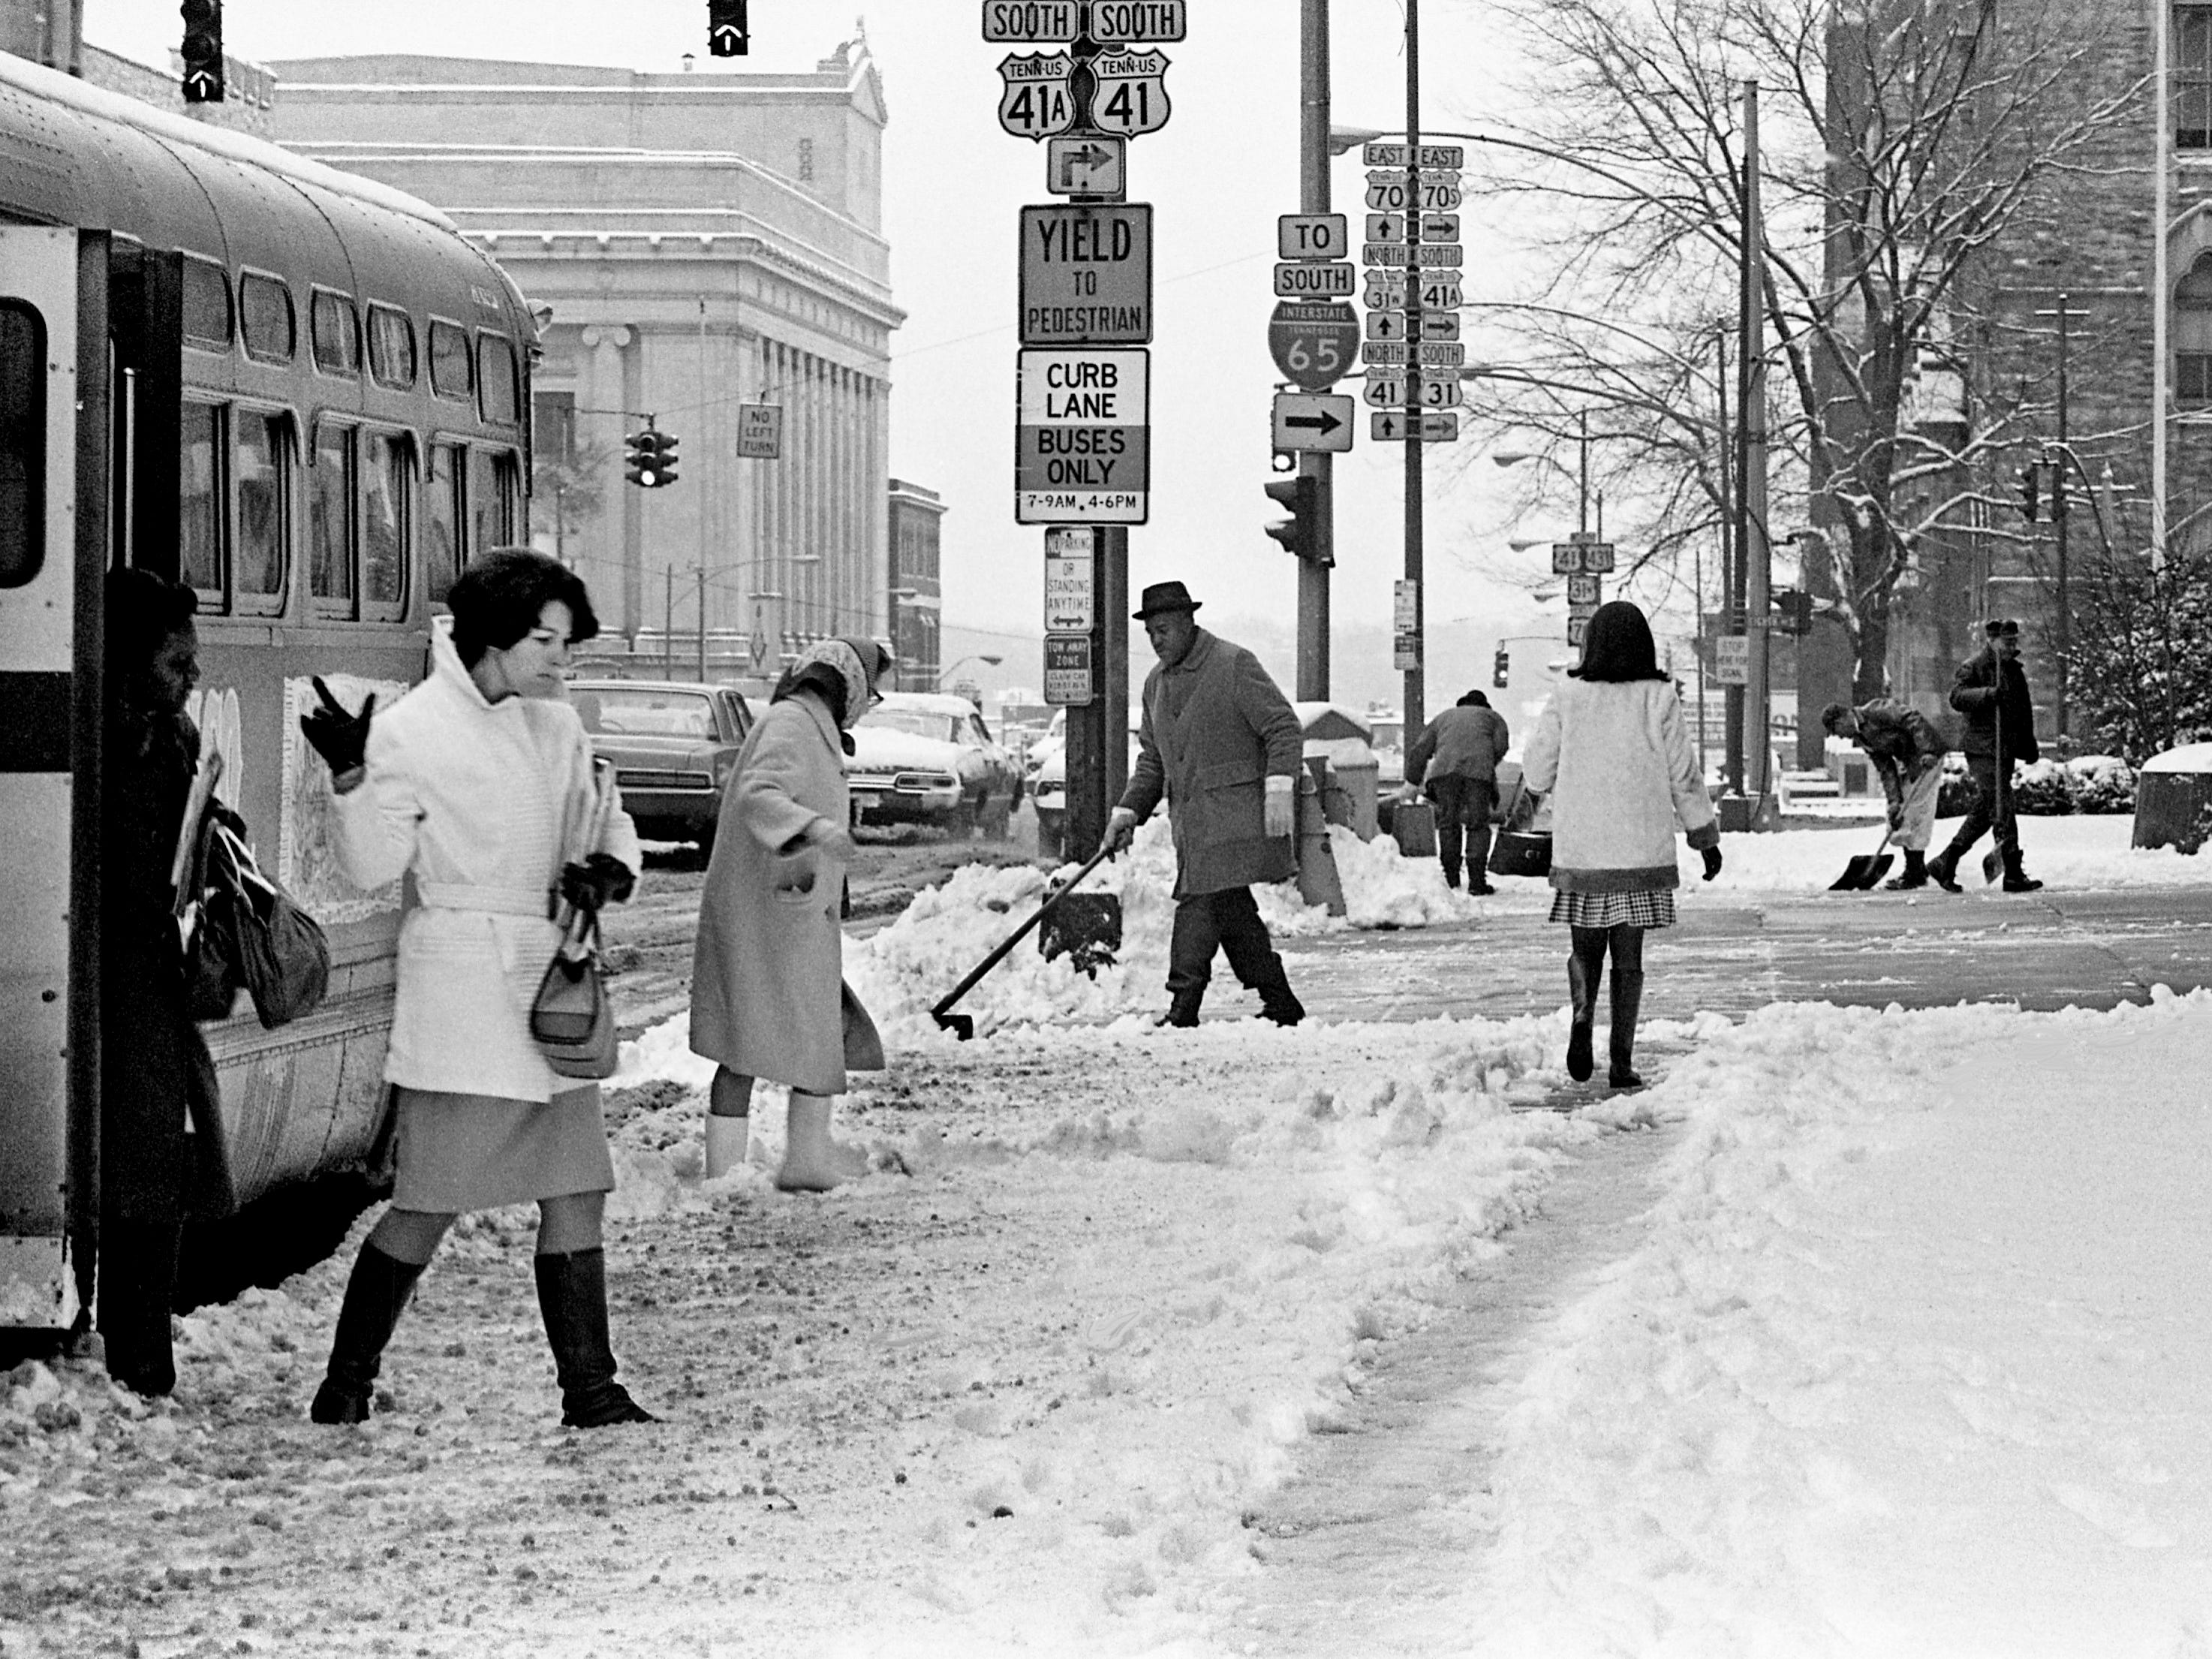 Four inches of snow cause treacherous footing for folks reporting to work on Broadway in downtown Nashville on Jan. 27, 1969.